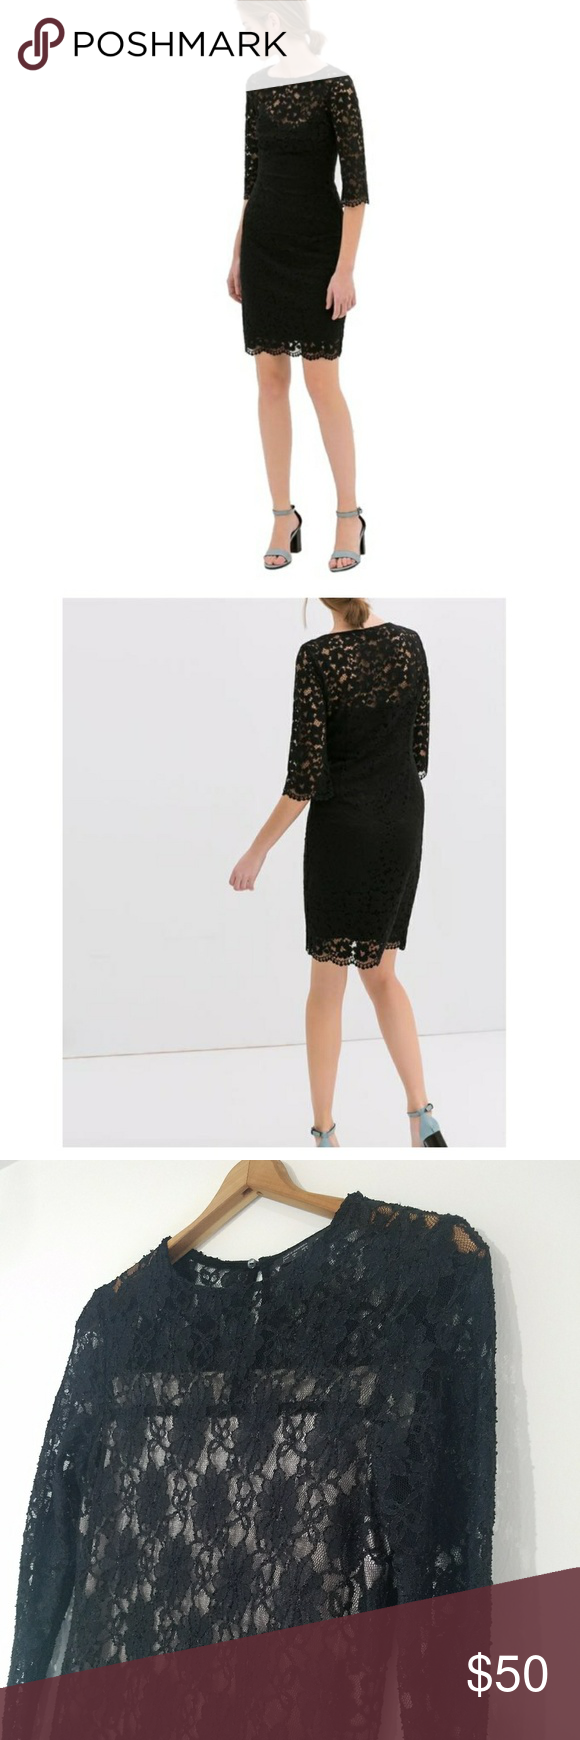 Zara black lace dress sexy lace dress by zara long sleeve black